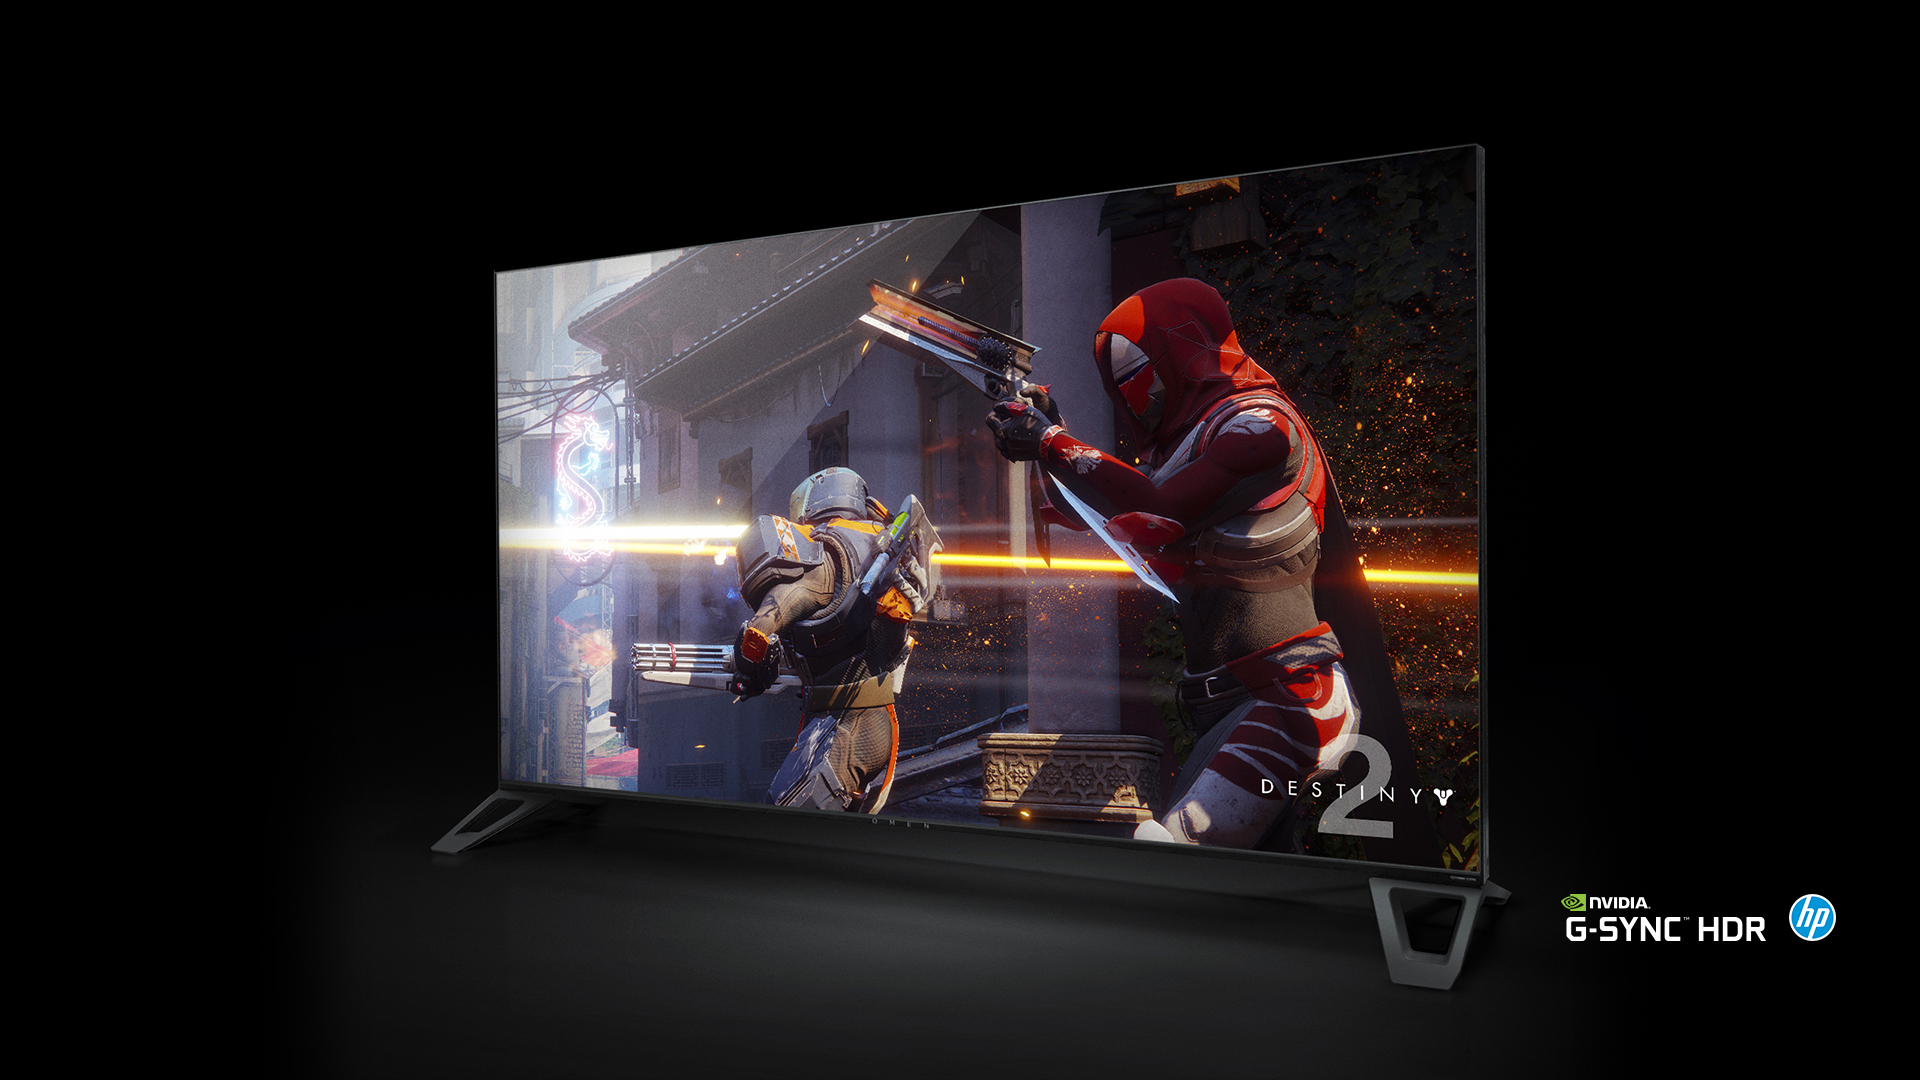 Nvidia Is Creating 65-inch 4K HDR Gaming Displays With